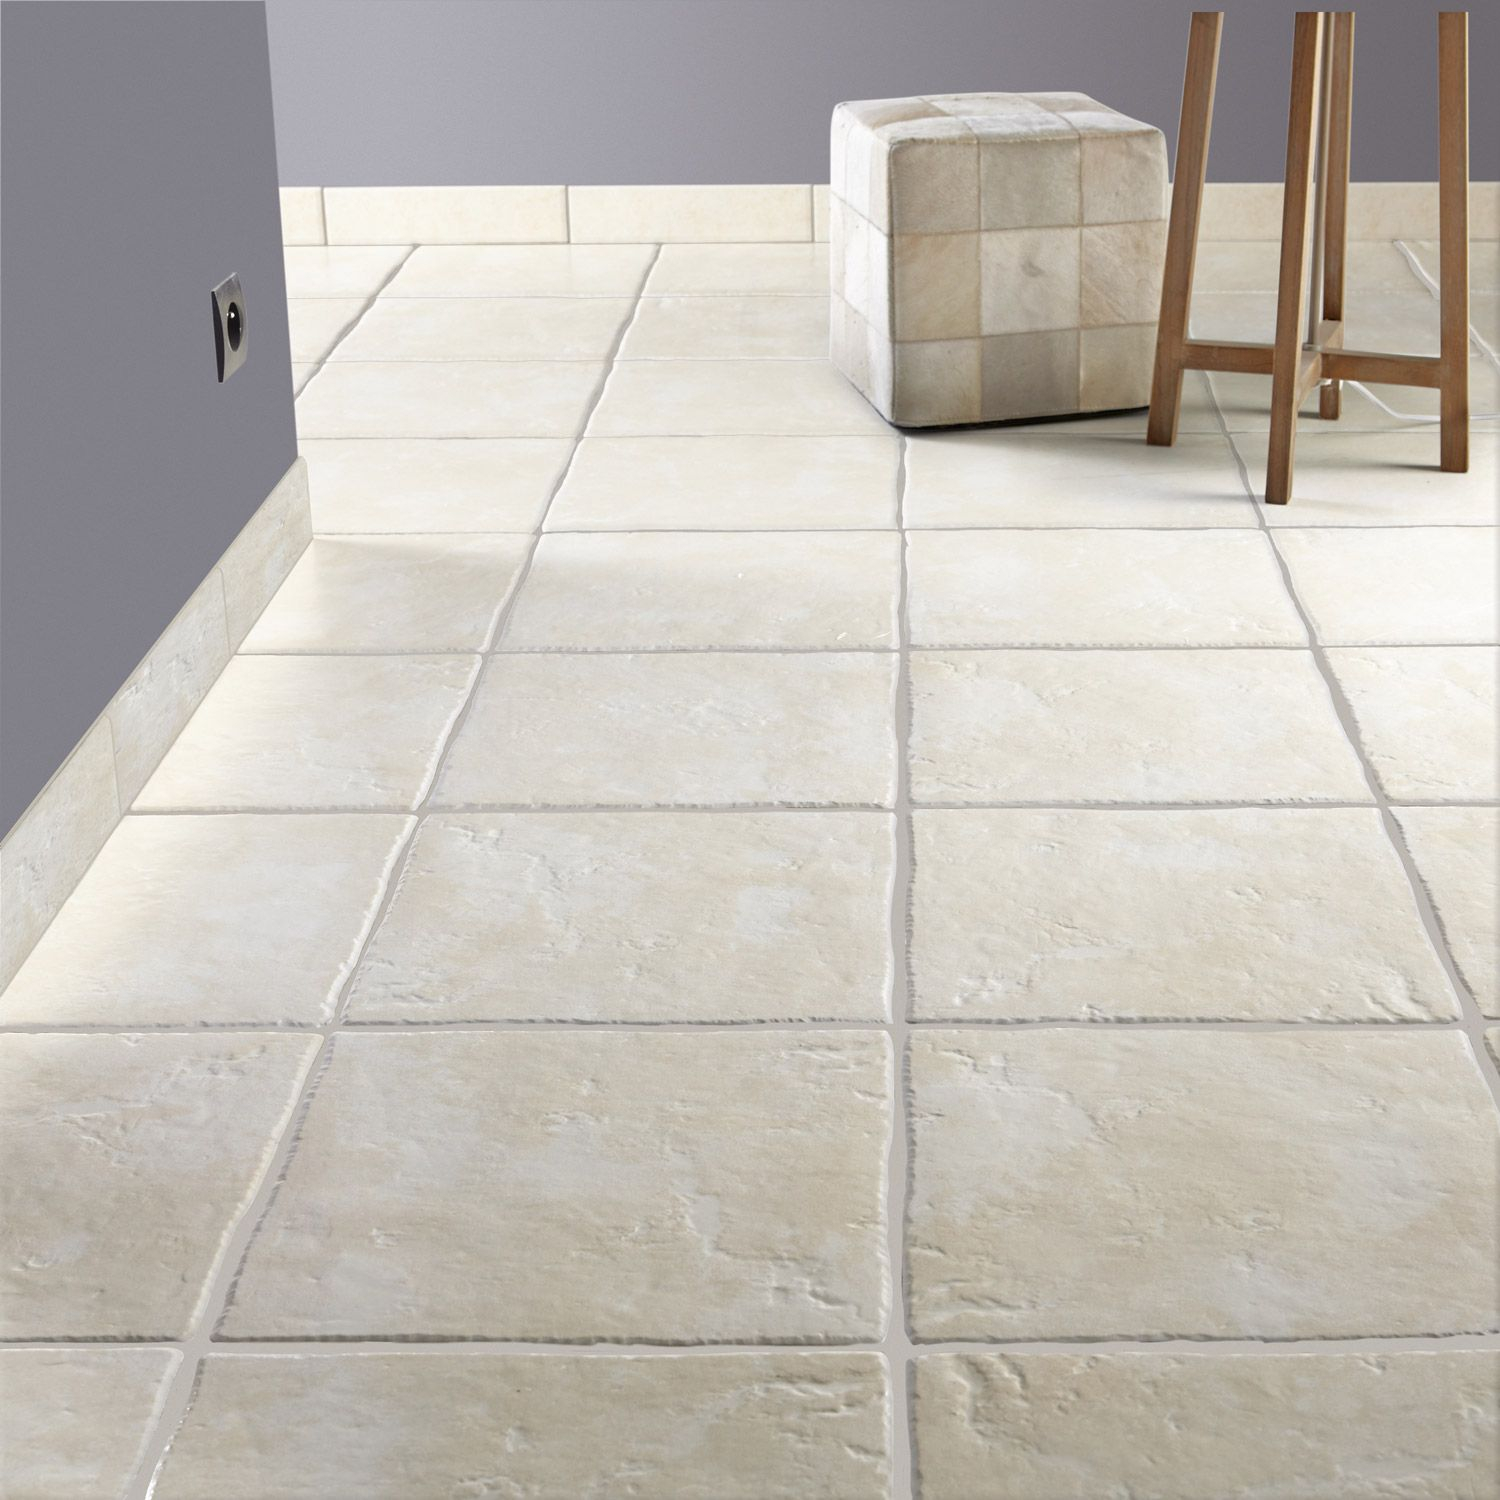 Carrelage Travertin Interieur Carrelage sol Maison Gris Relief Magasin